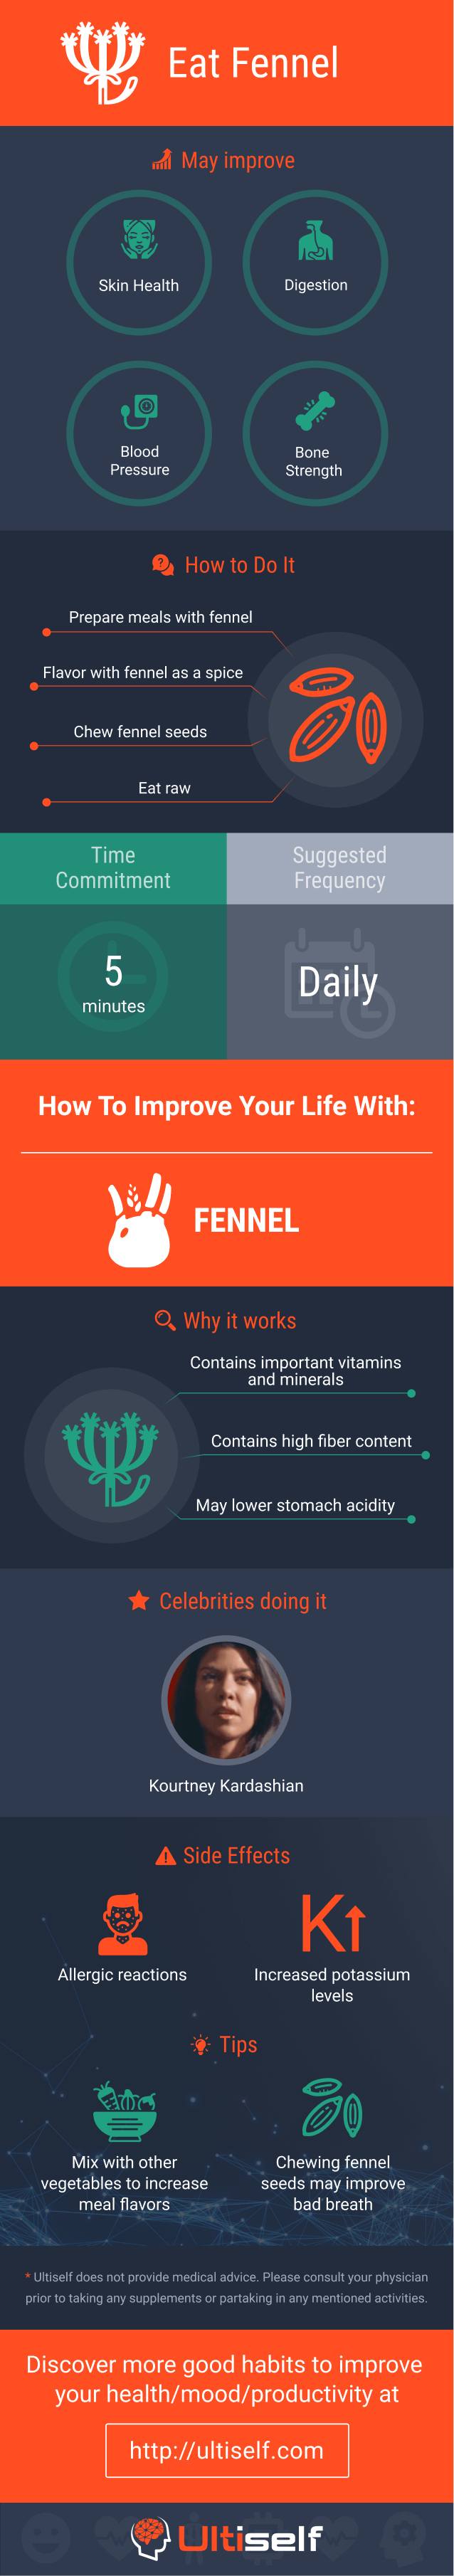 Eat Fennel infographic